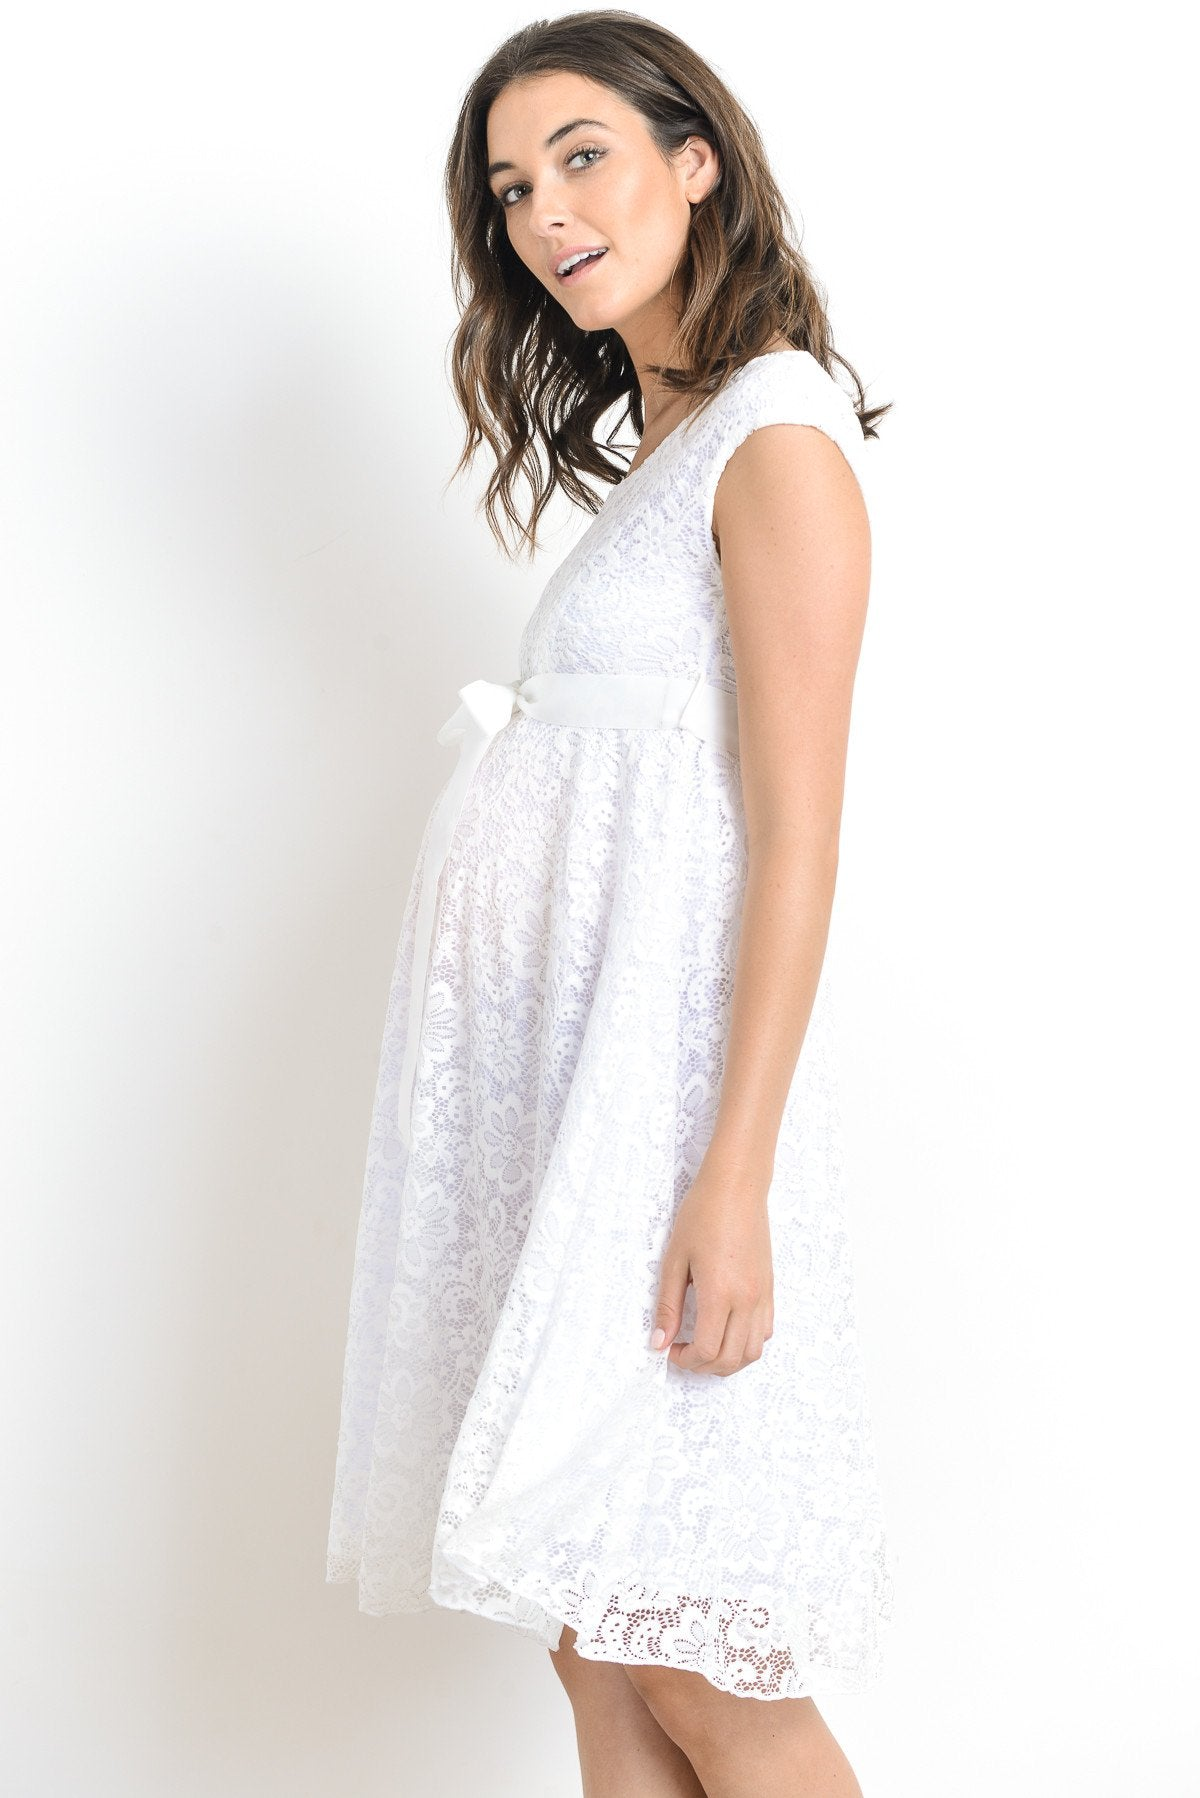 Libby Lace Cap Sleeve Maternity Dress